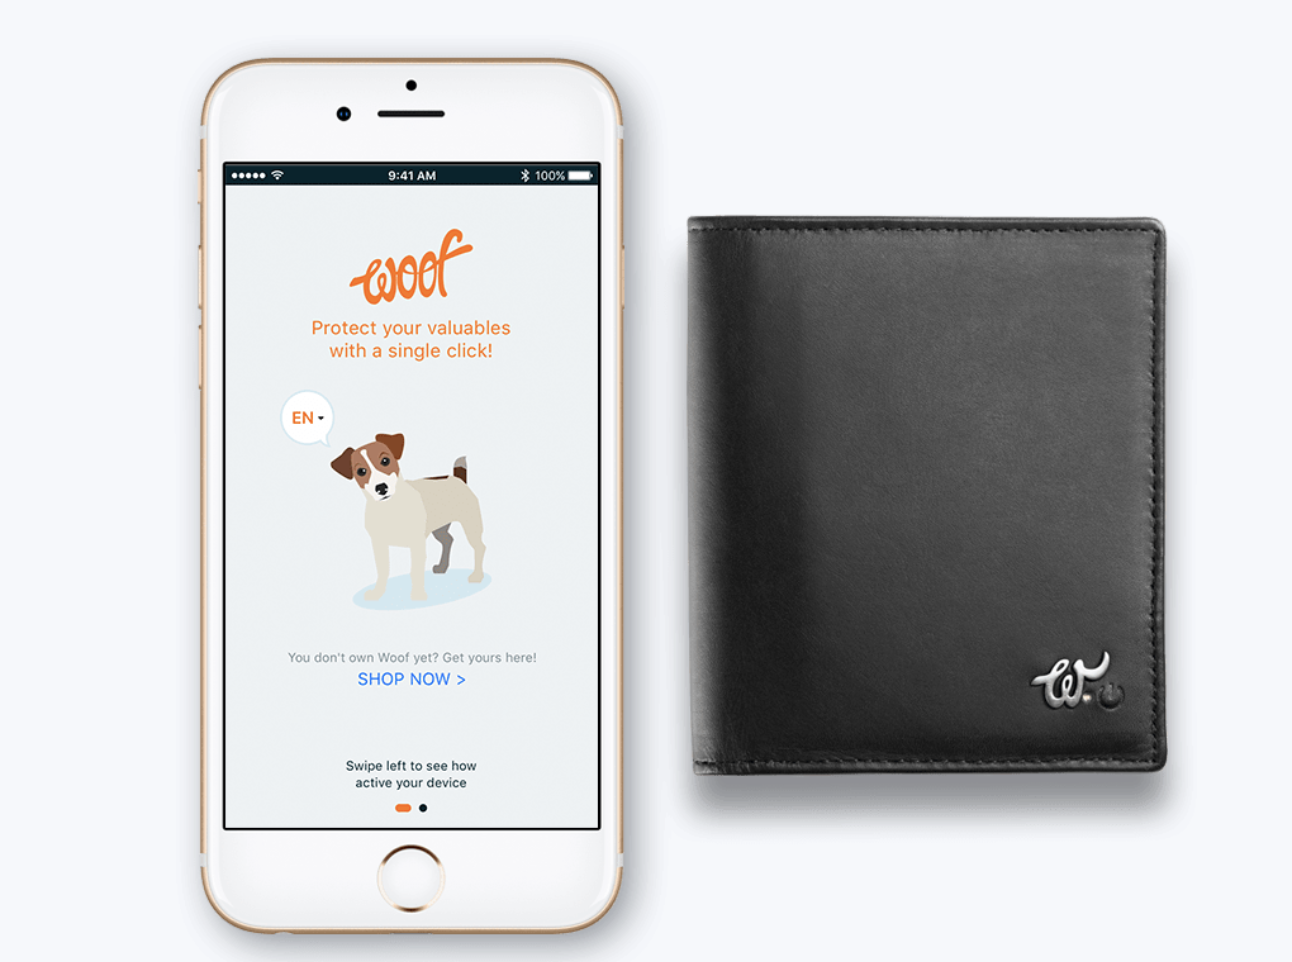 Woolet Woof Glow wallet. Smart wallets with GPS tracking.